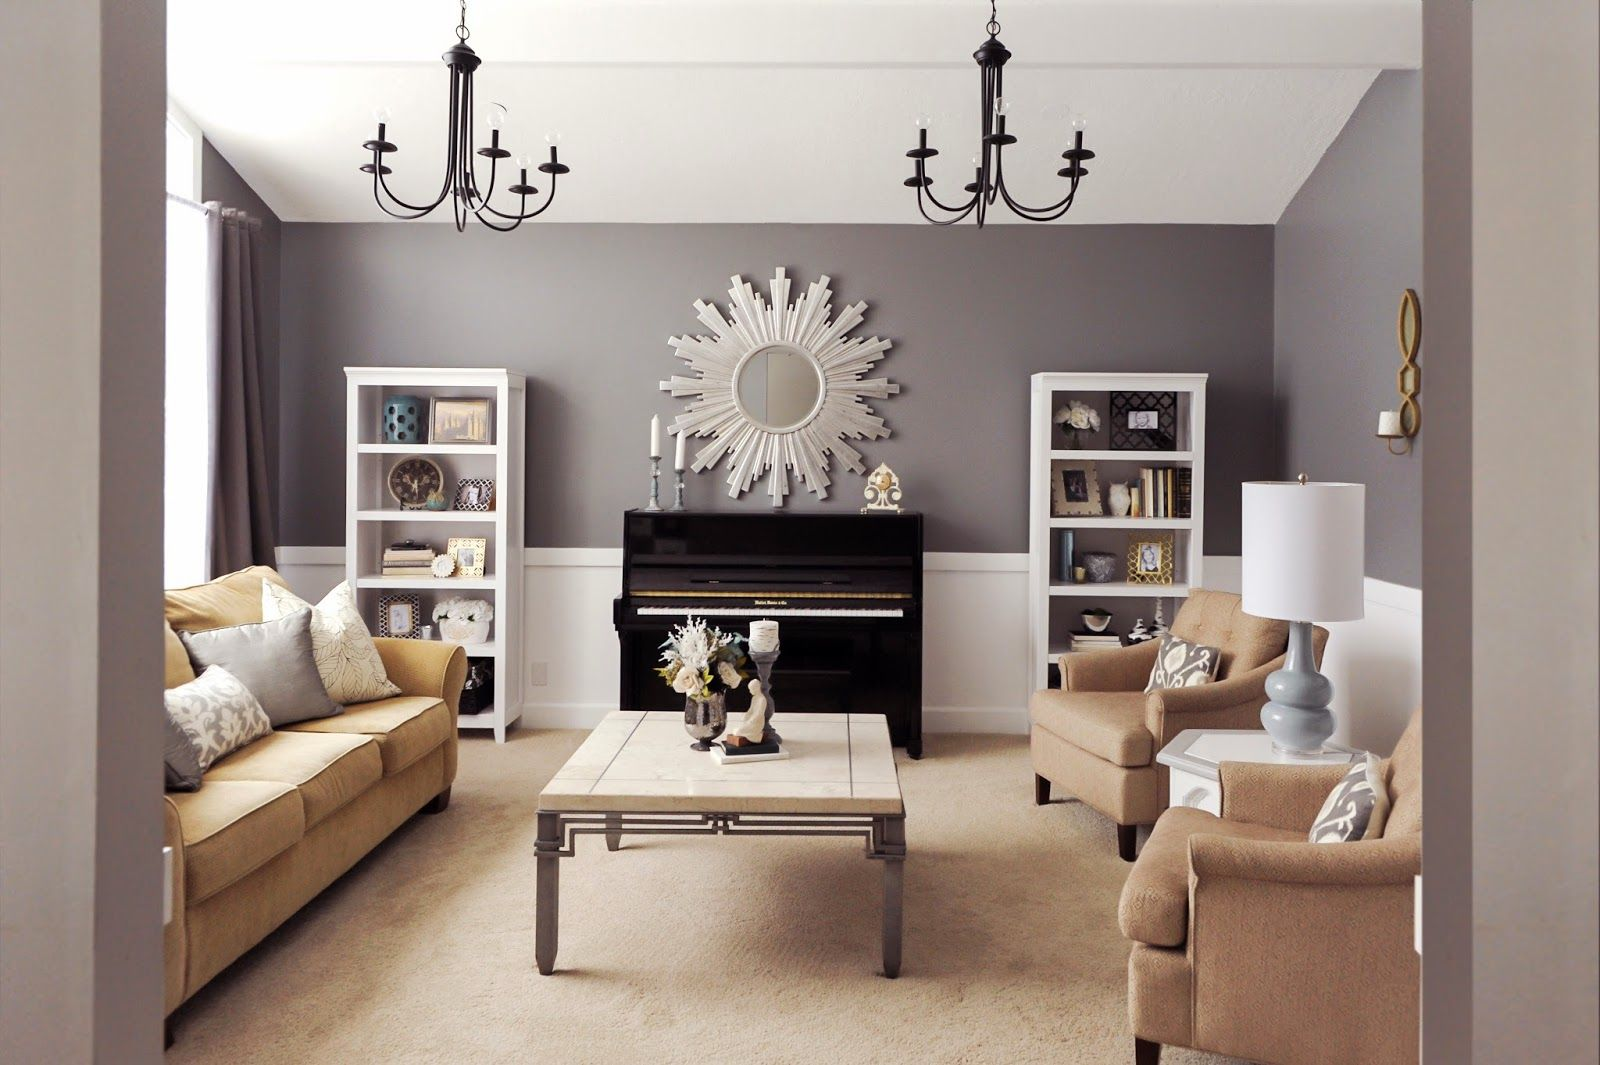 Studio 7 Interior Design Client RevealTransitional Chic Formal Living Room